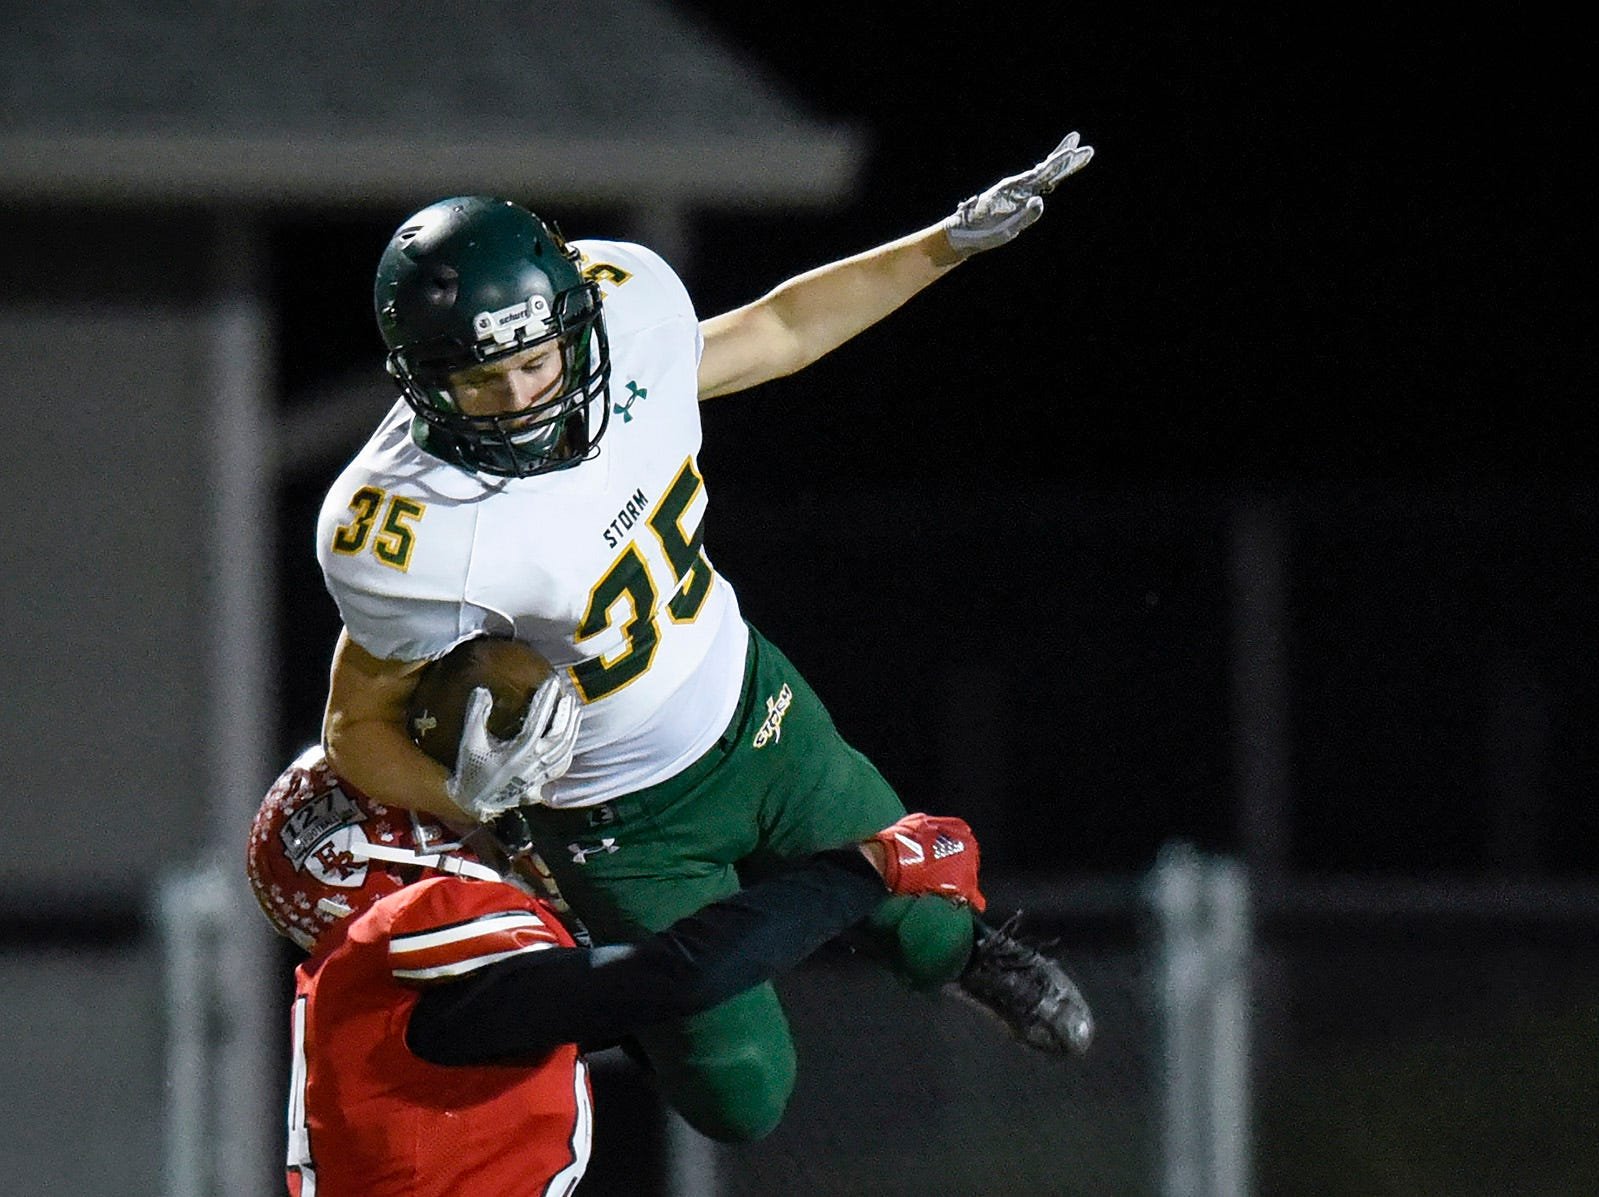 Sauk Rapids wide receiver Zach Storms tries to avoid being tackled against Elk River during the first half Friday, Nov. 2, in the Section 6-5A championship at Buffalo High School.